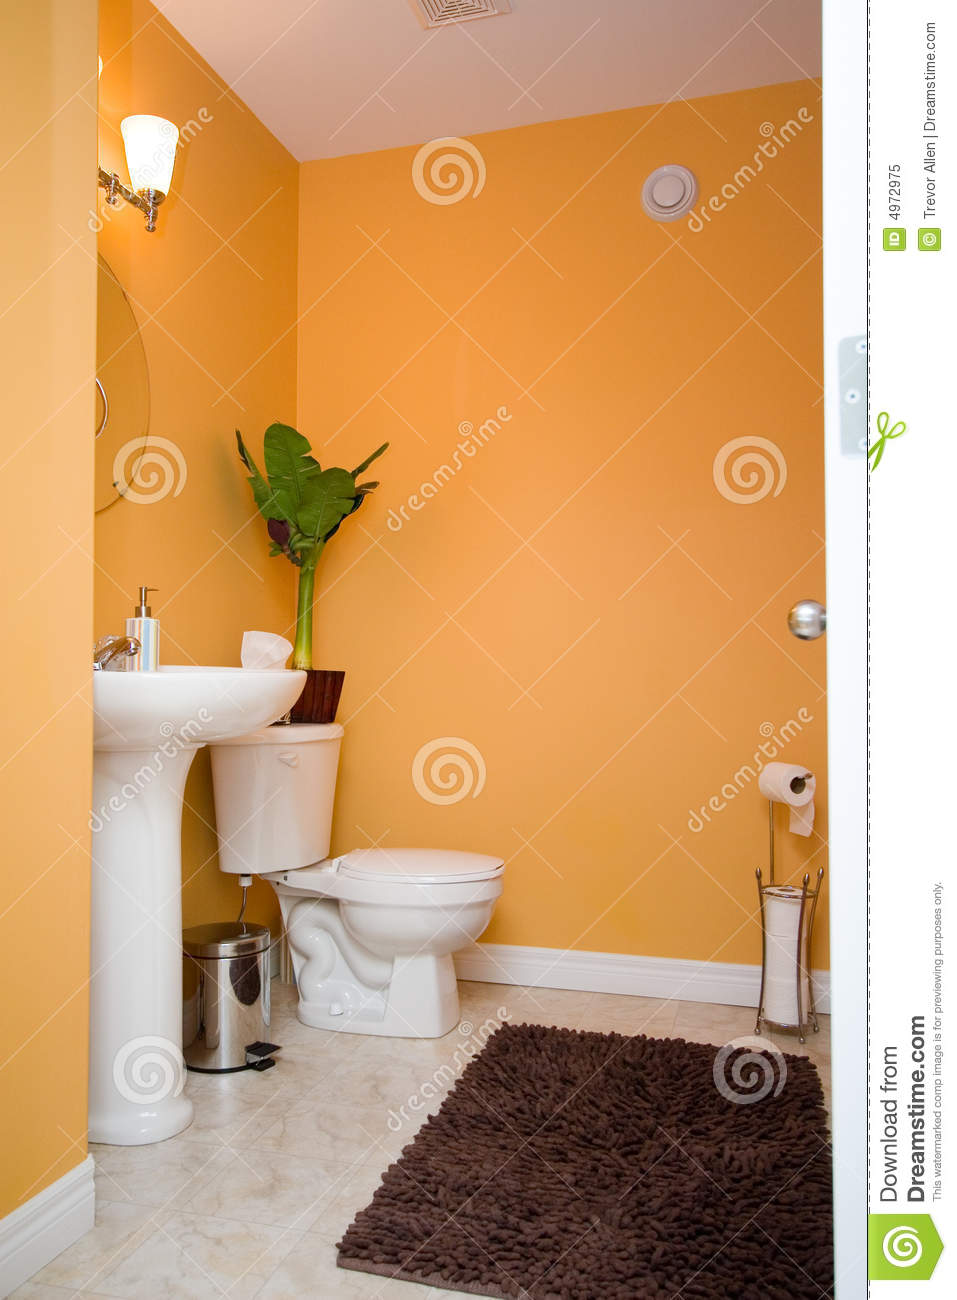 Orange Bathroom Orange Bathroom Royalty Free Stock Photo  Image 4972975